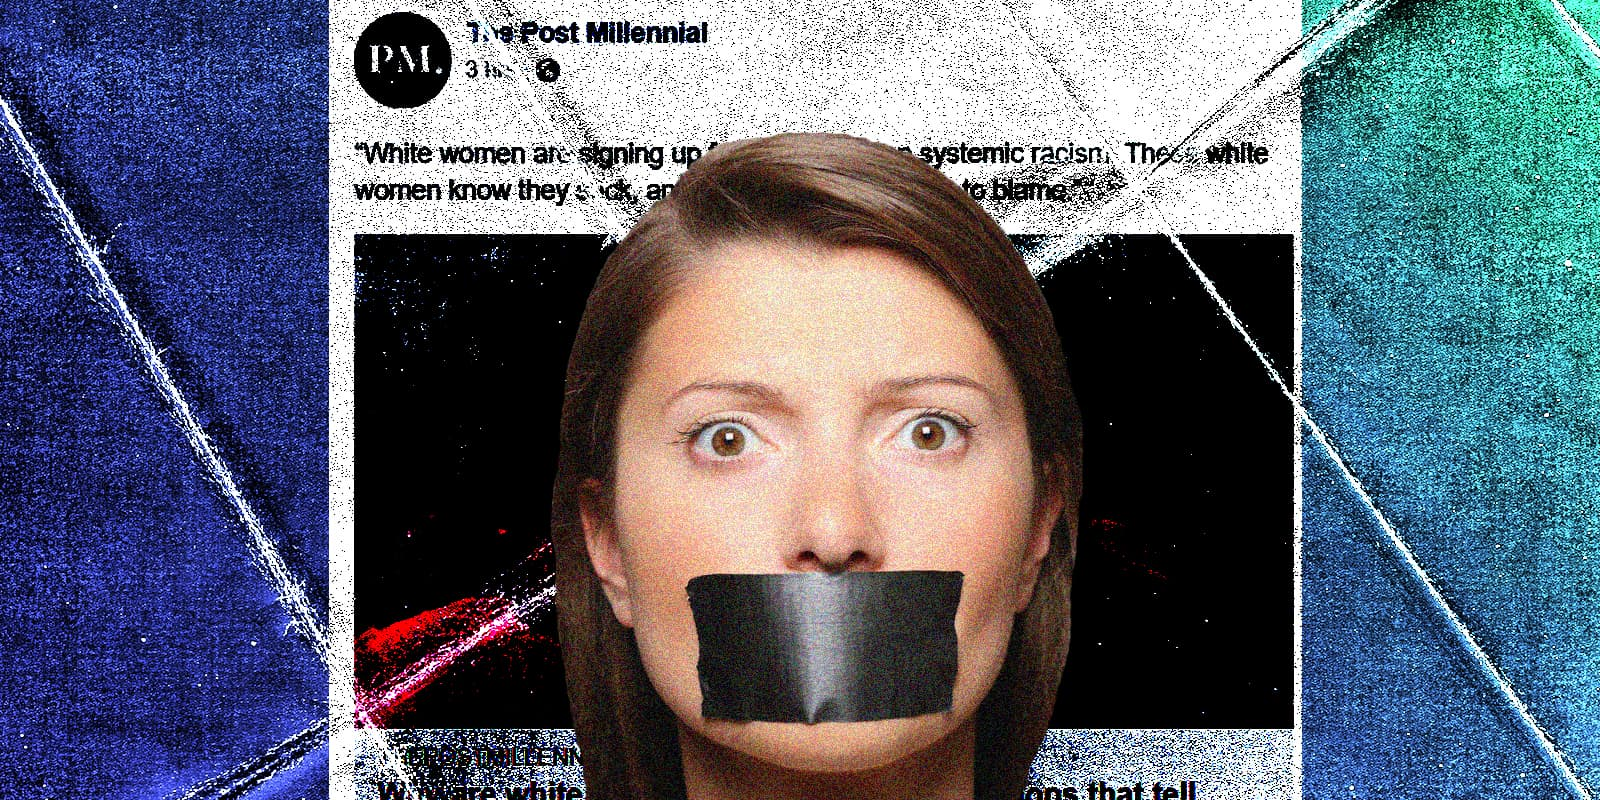 Facebook falsely accuses The Post Millennial of 'hate speech'